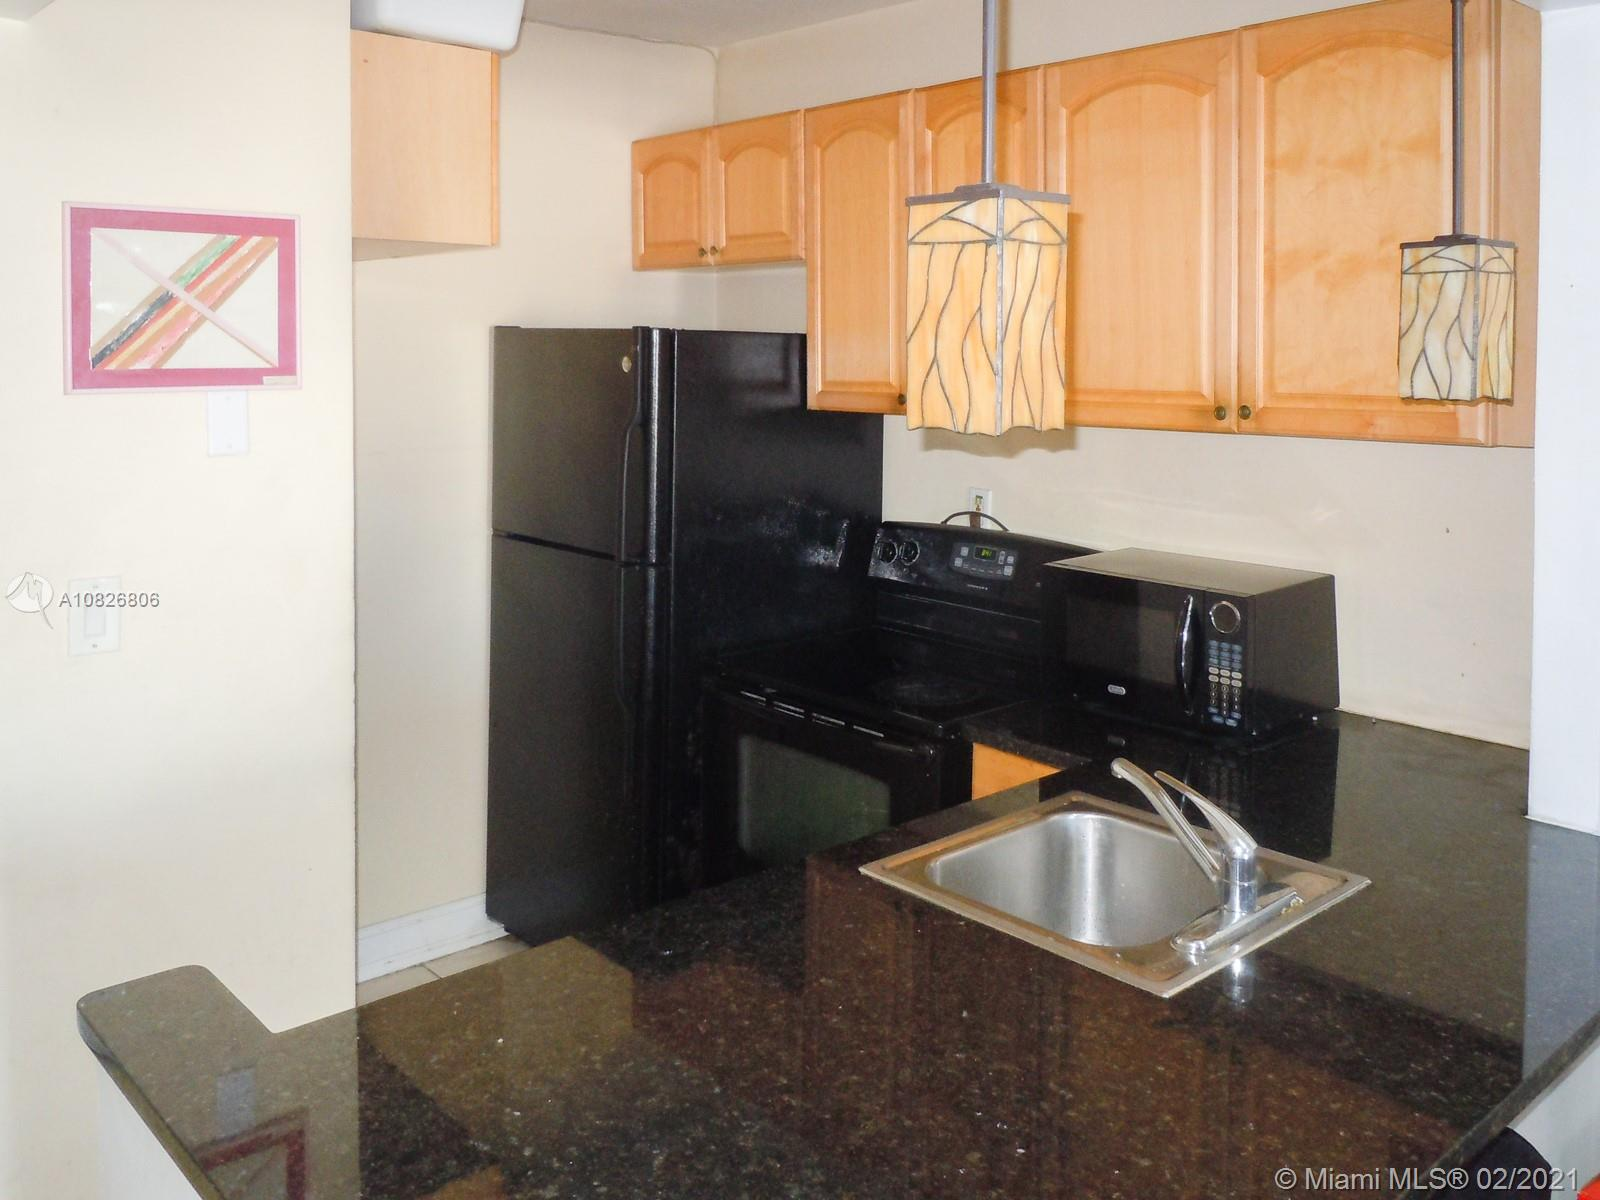 Island Place, 1455 N Treasure Dr Unit 7 D, North Bay Village, Florida 33141, image 3